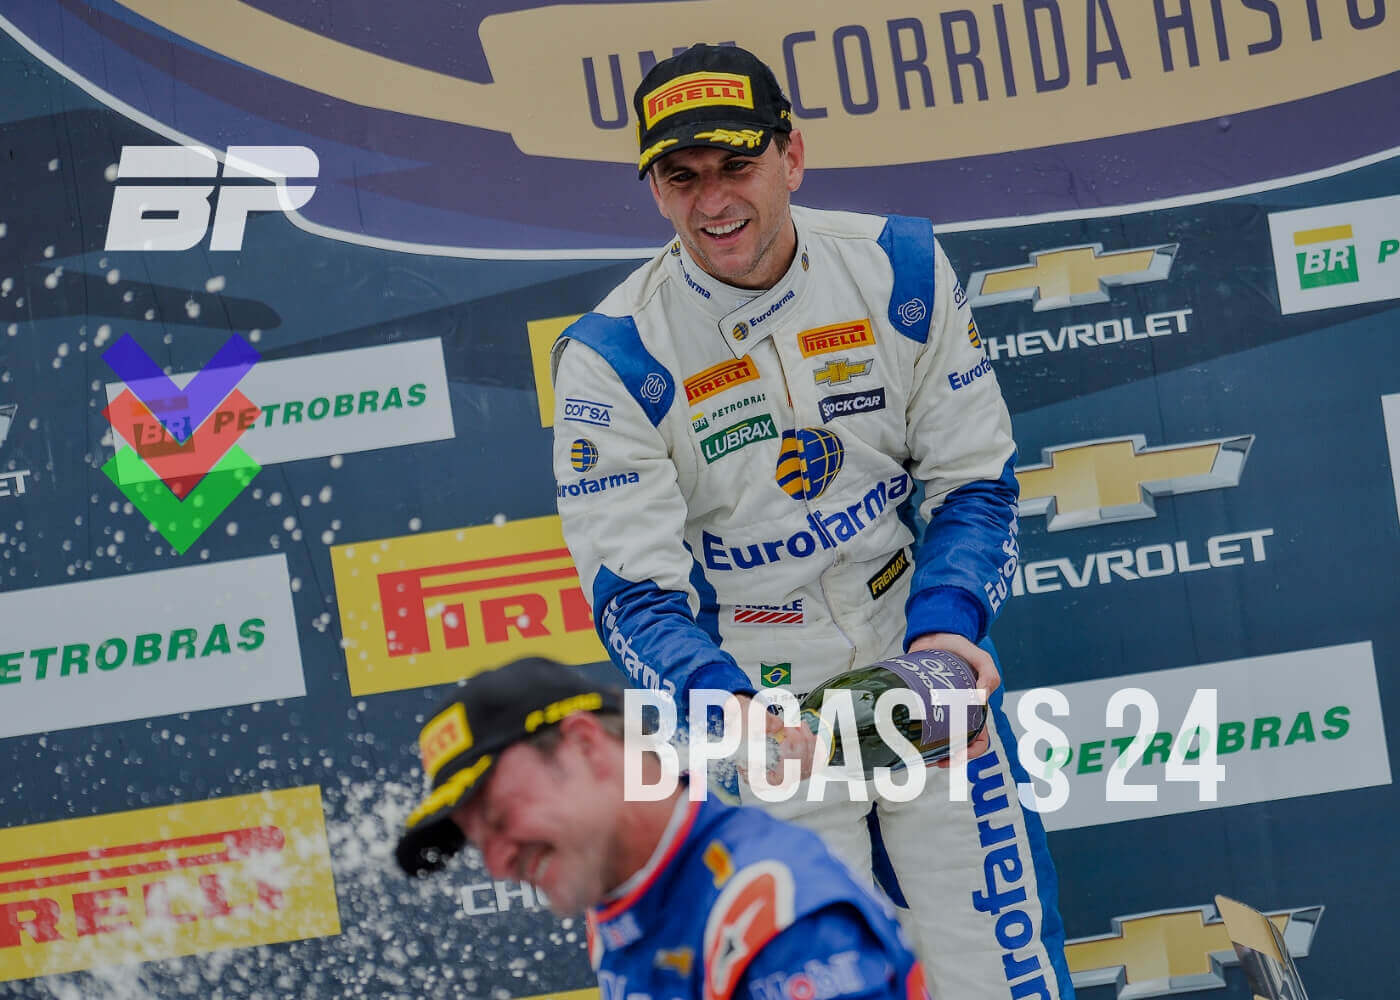 Foto de BPCast § 24 | Stock 500 do poker ao triunfo do herdeiro